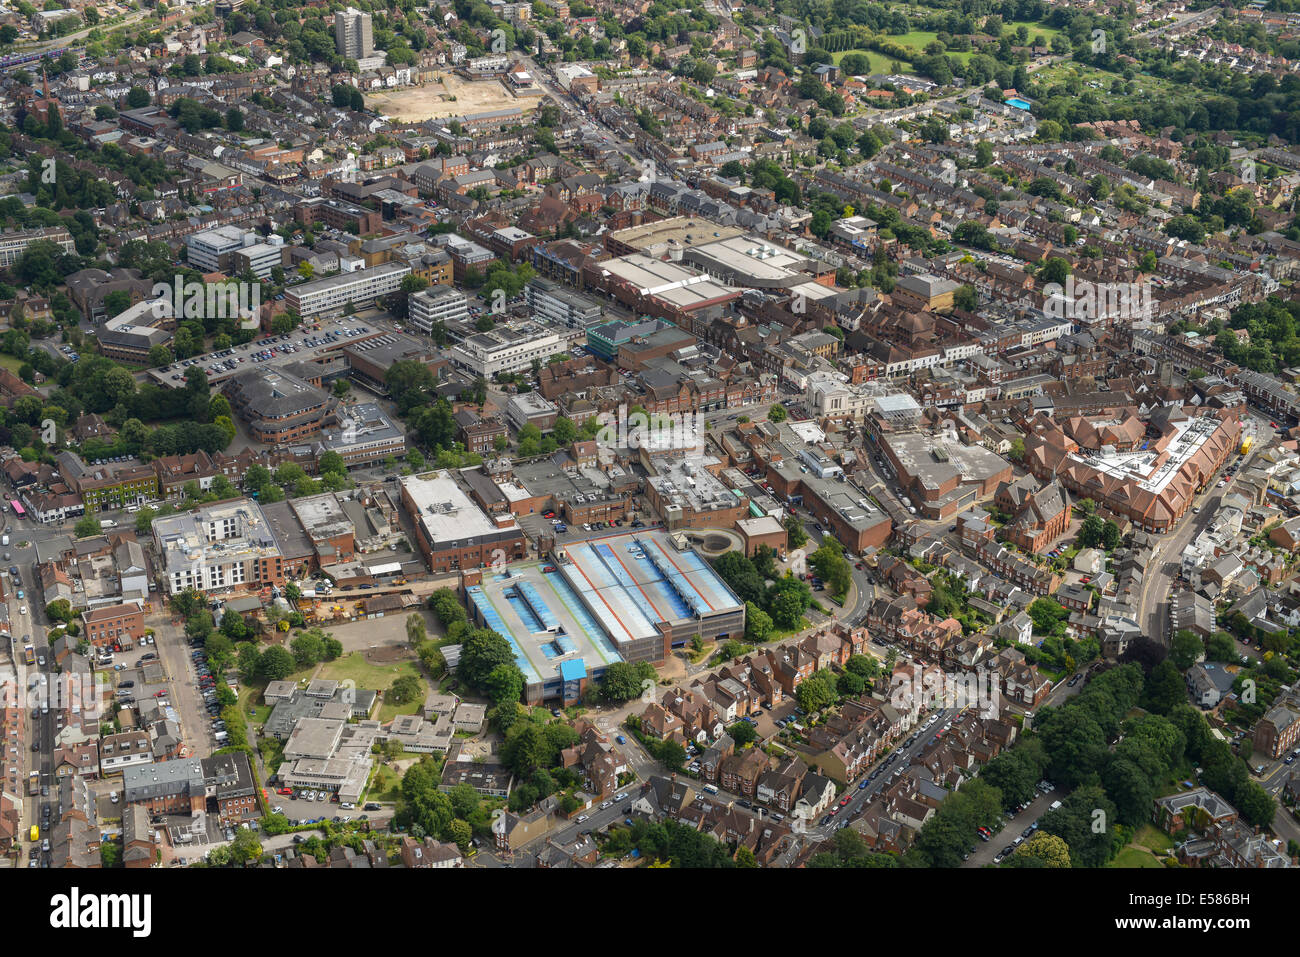 An Aerial View Showing The Town Centre Of St Albans In